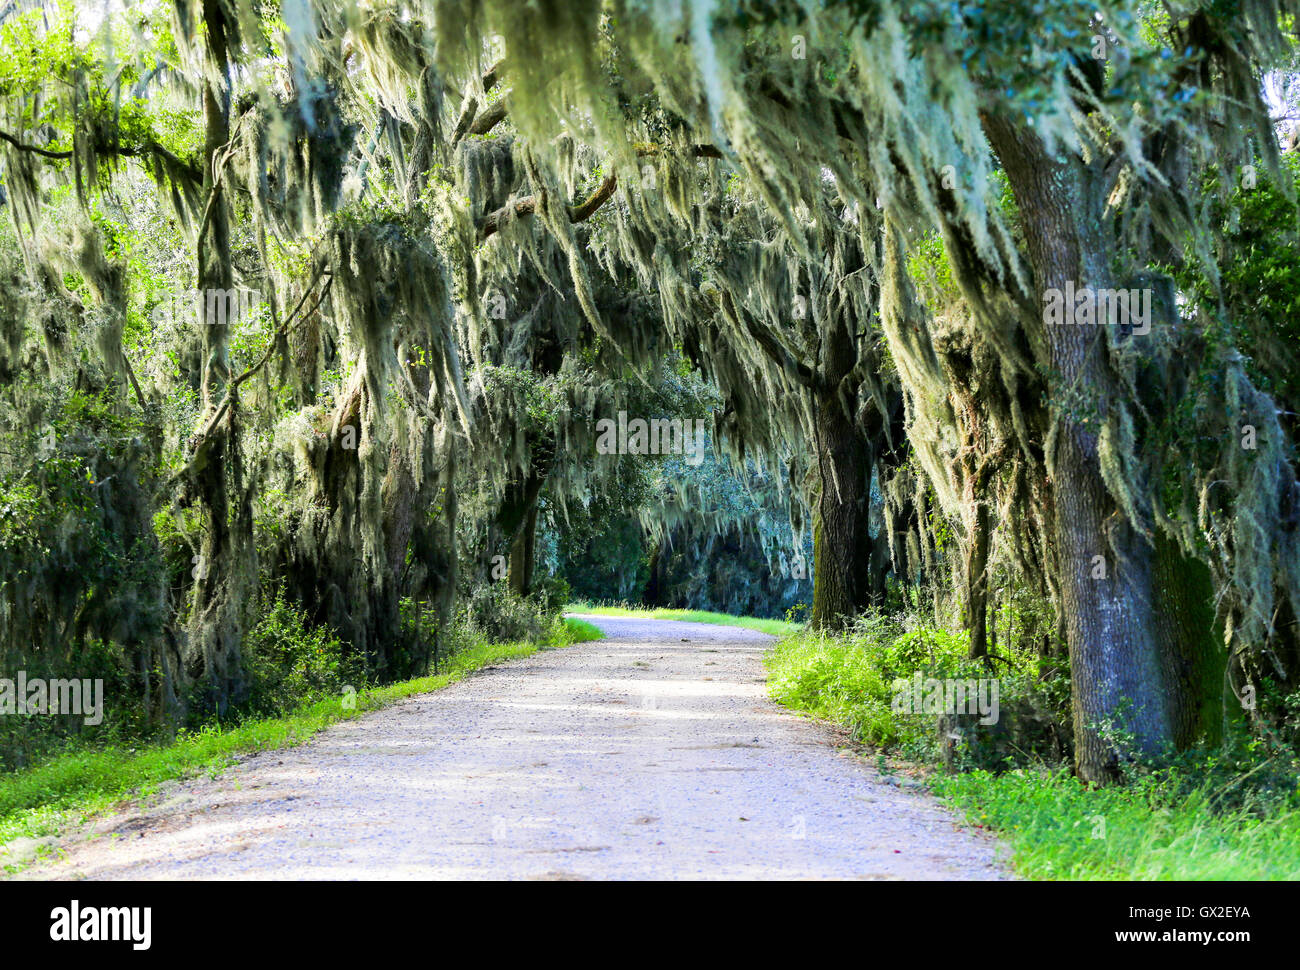 Road With Trees Overhanging With Spanish Moss In Southern Usa Stock Photo Alamy